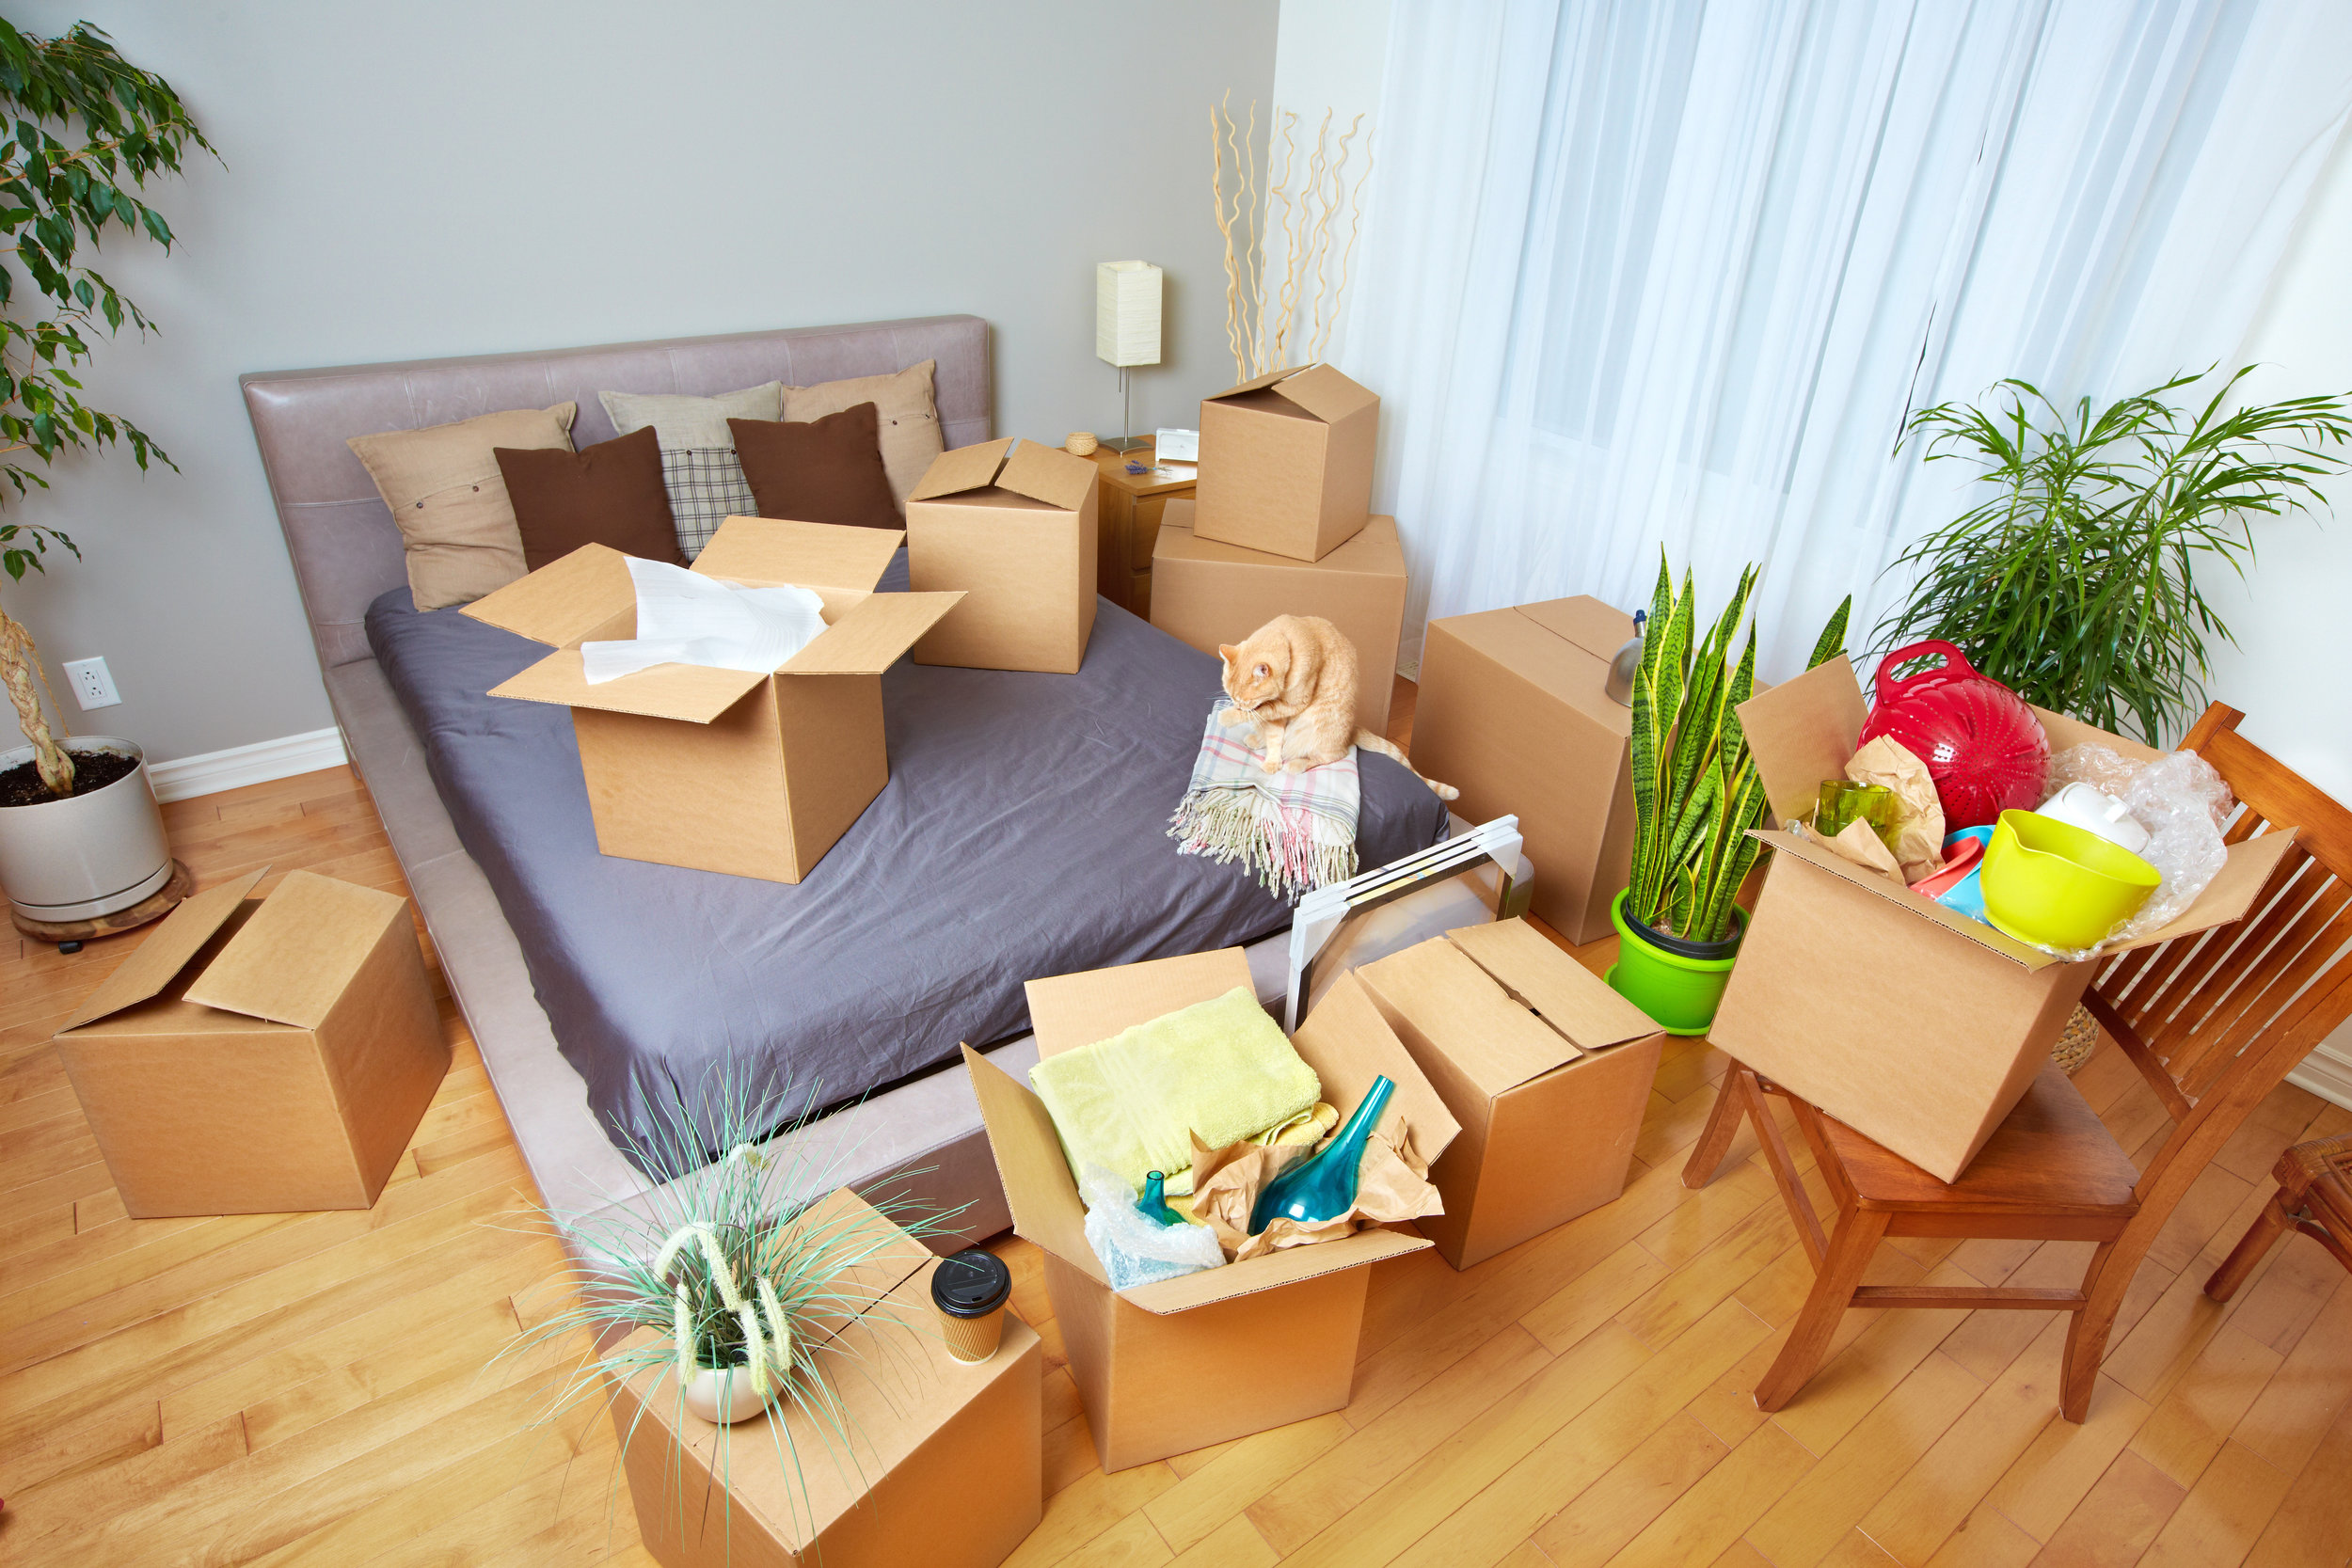 HOME MOVER - Secure your dream move and get that house you've made an offer on. Knowing we're there with you at every step.